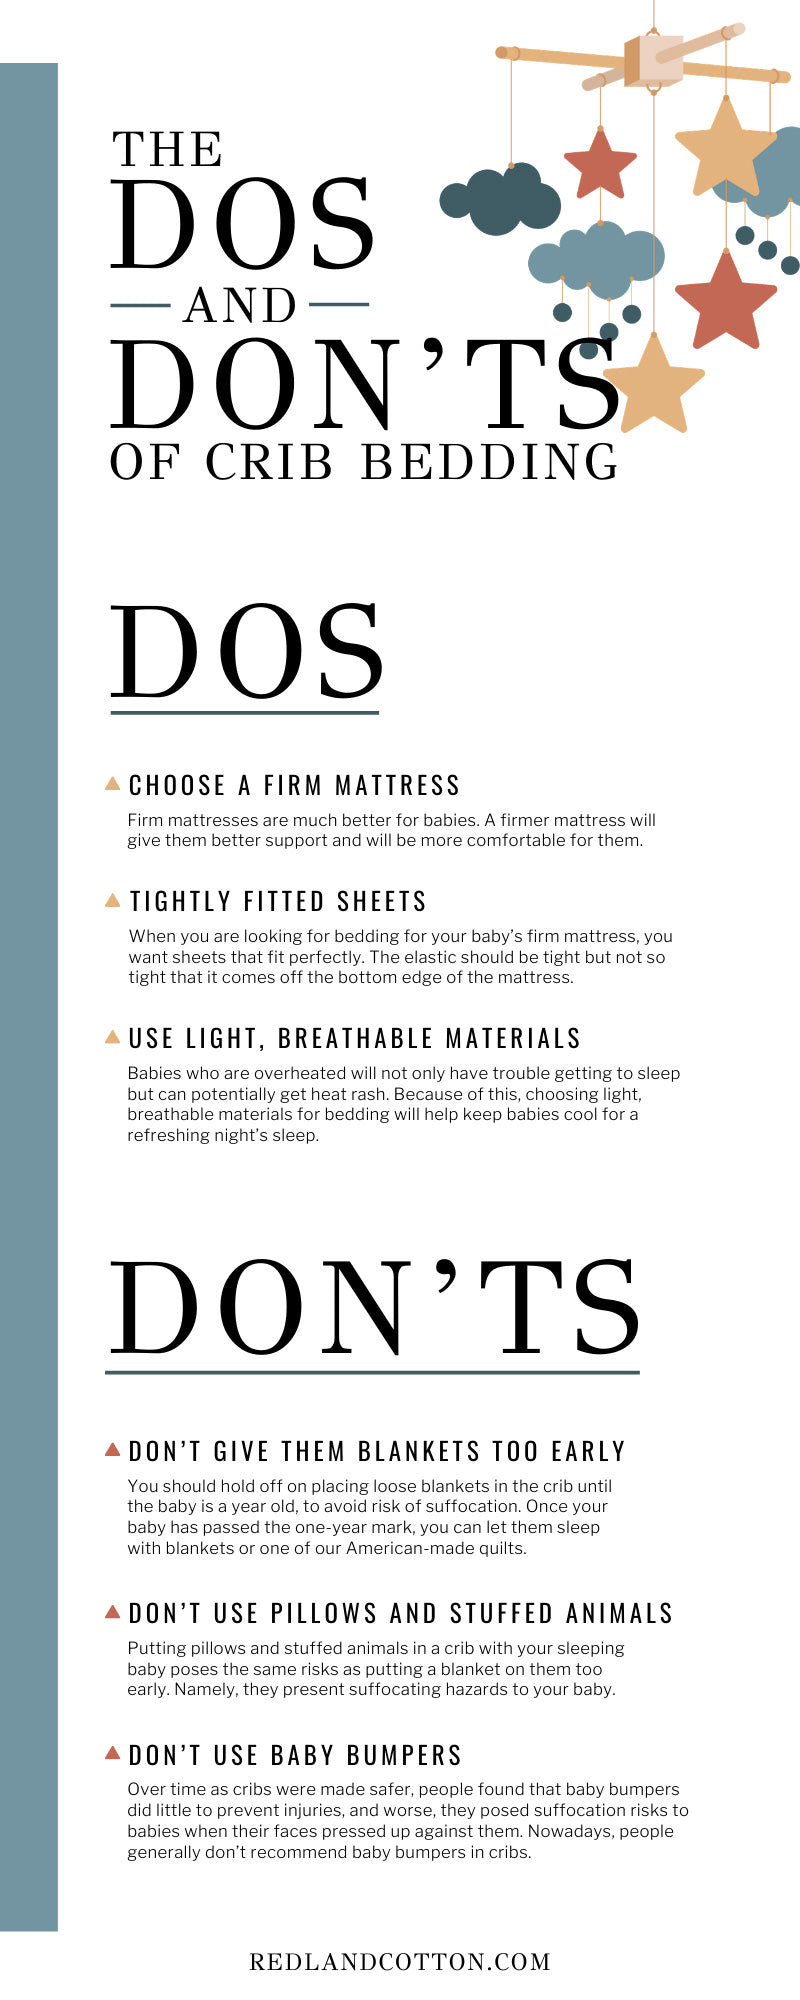 The Dos and Don'ts of Crib Bedding infographic